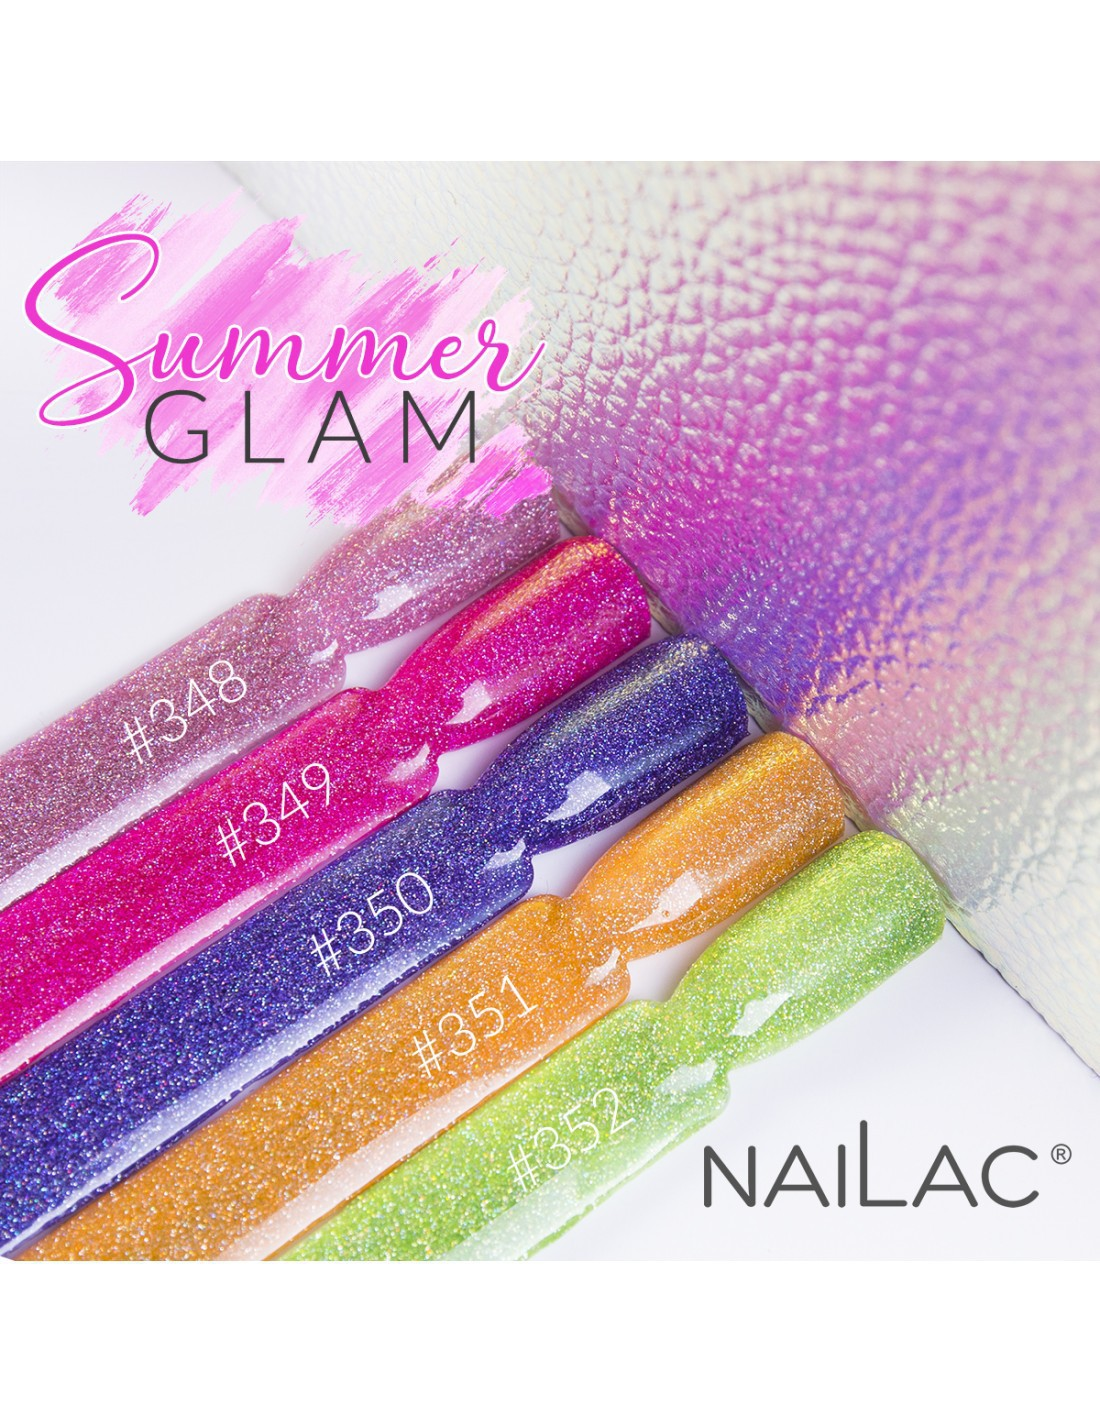 Summer Glam - NaiLac